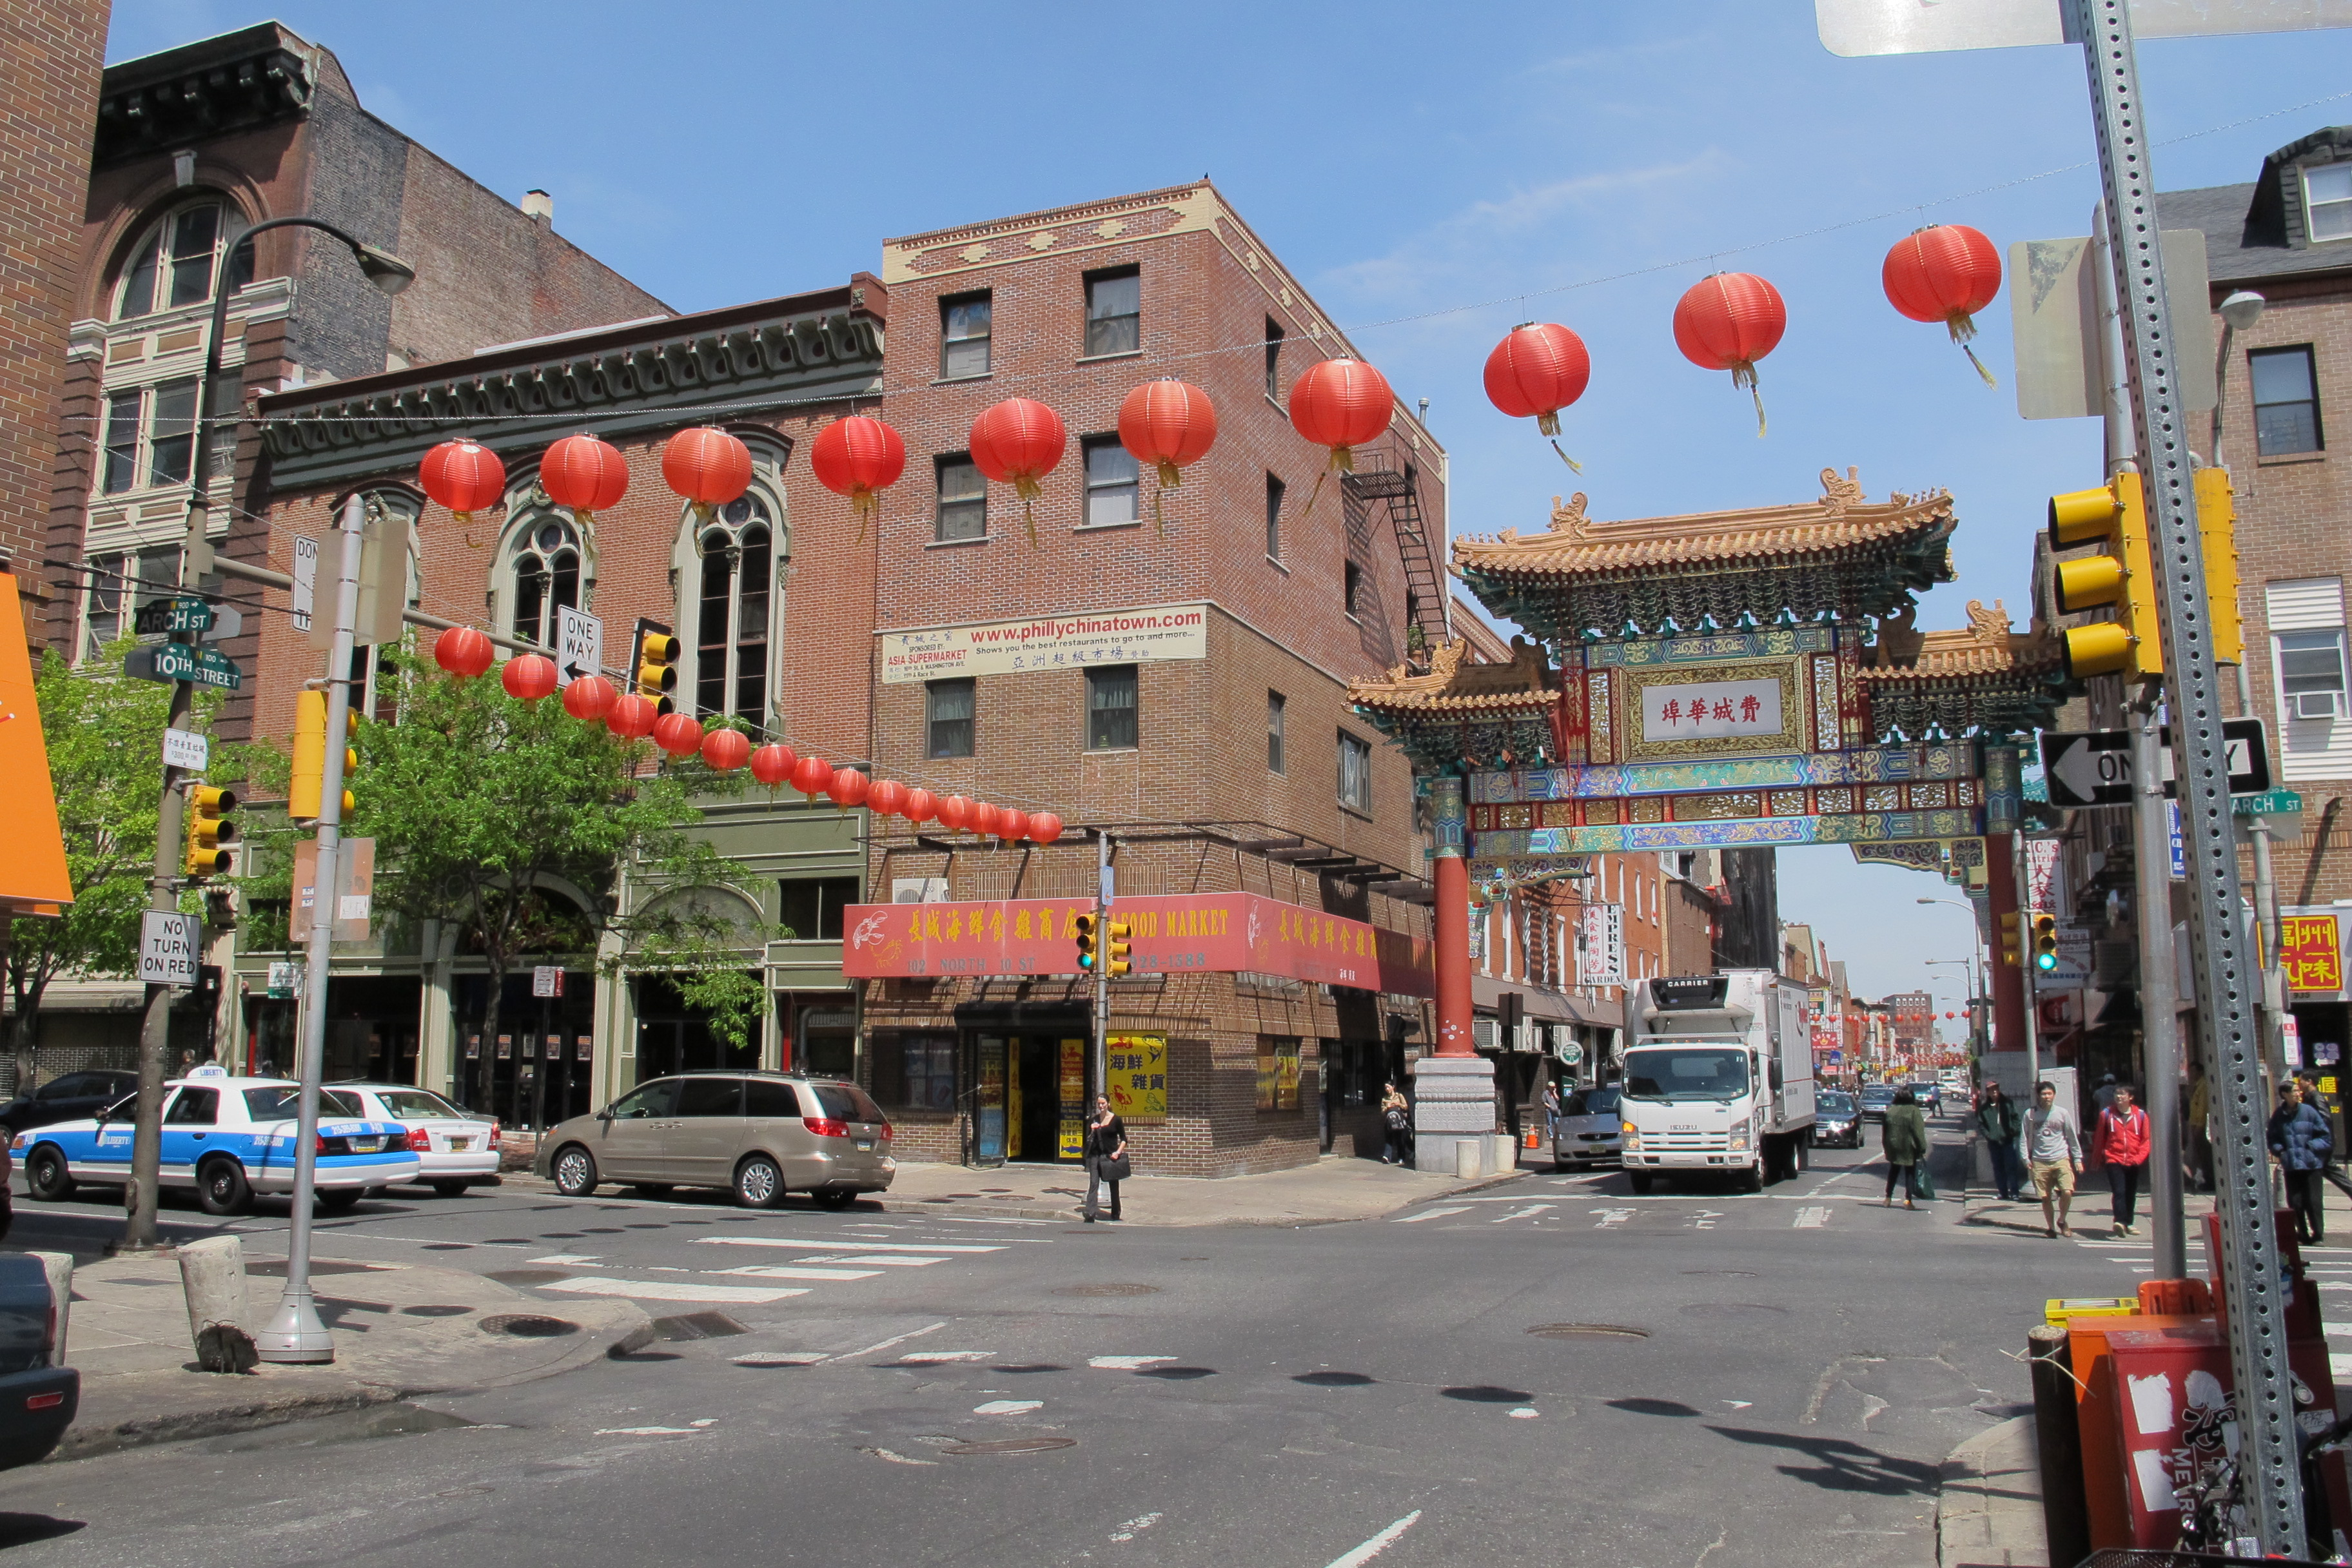 Learn about community organizing in Chinatown Monday night at HSP.